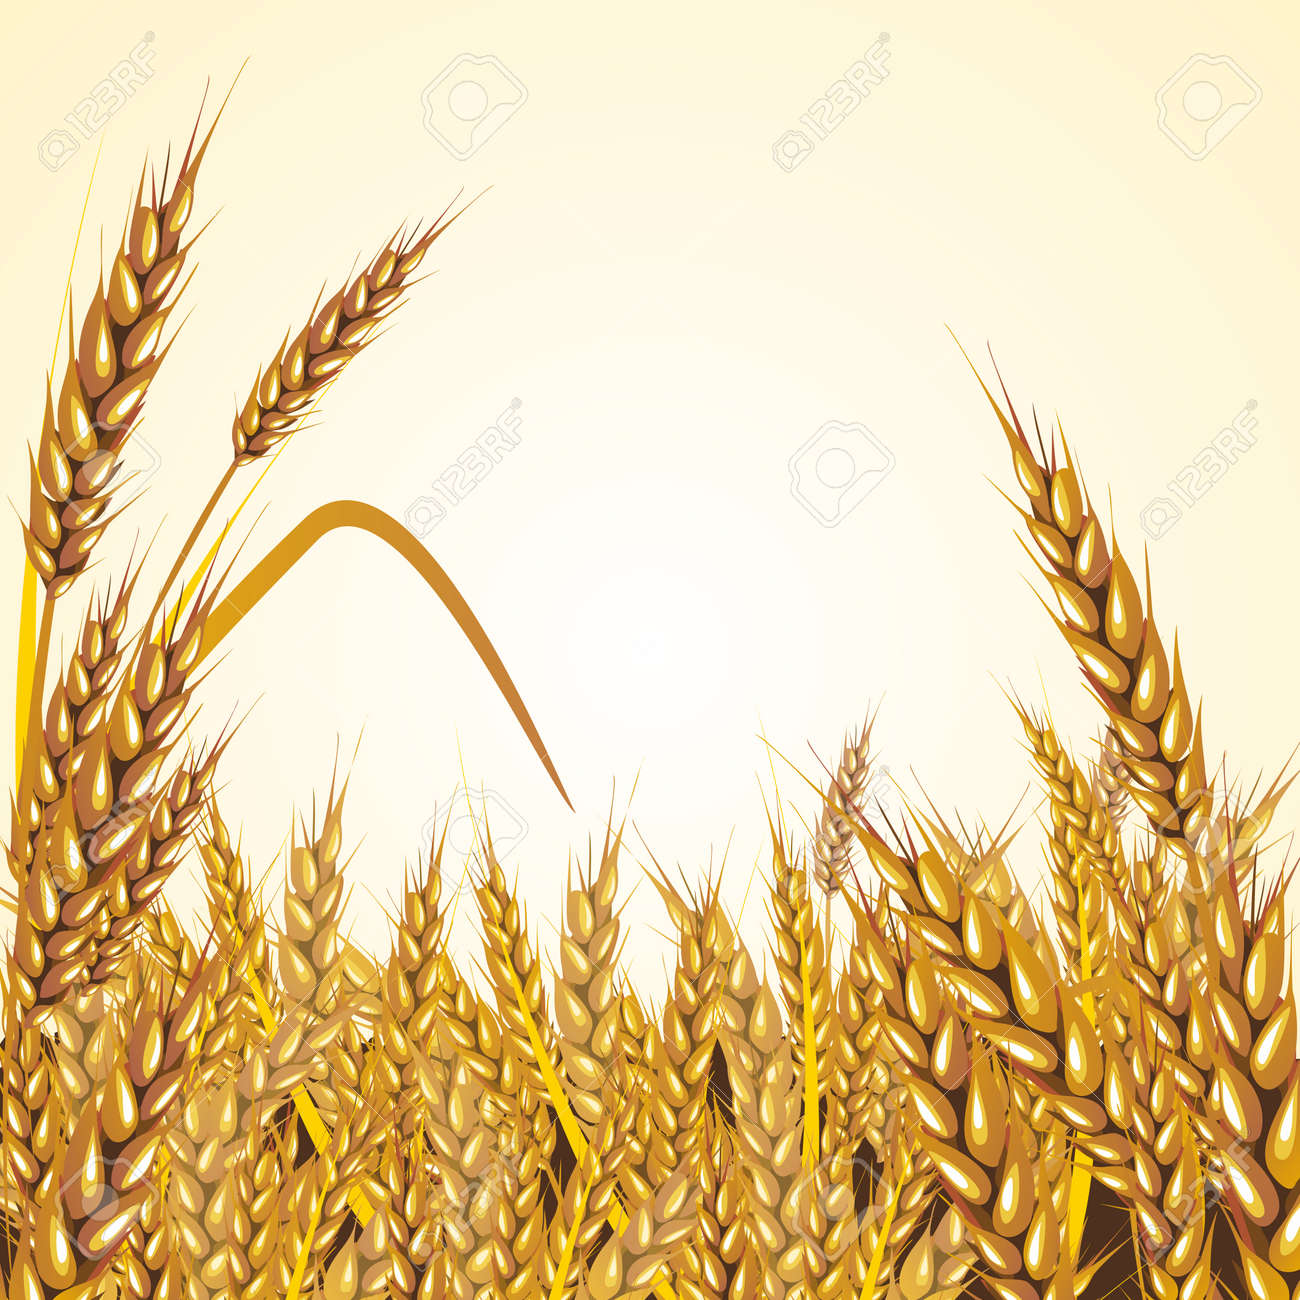 Vector Paddy Grass Closeup Illustration, mature and ready for harvesting - 50019793